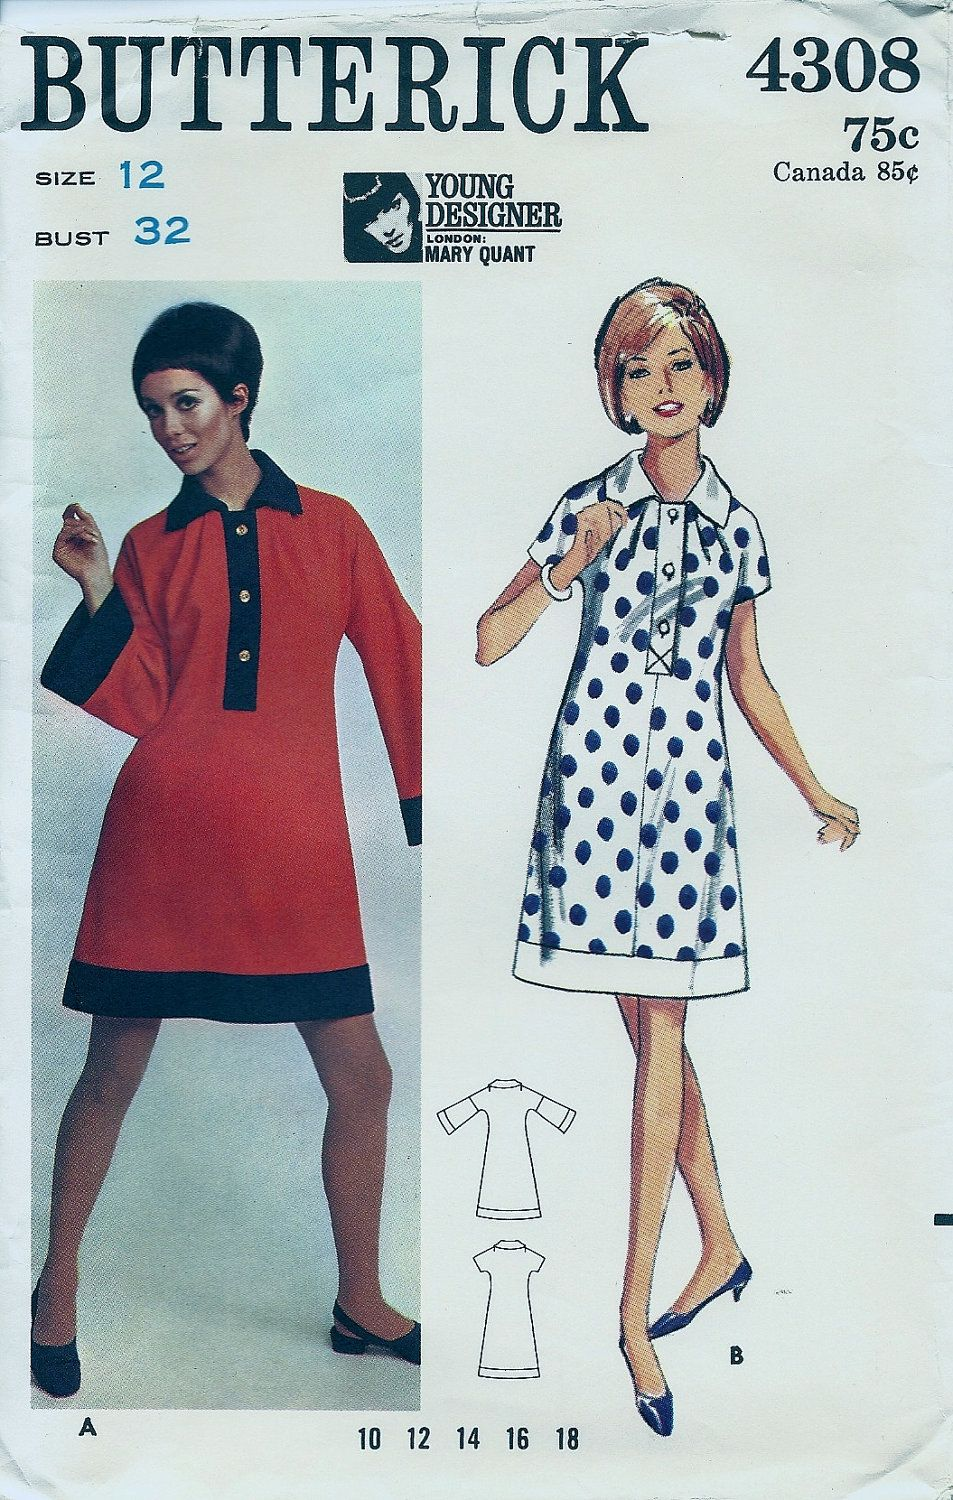 Items Similar To Mary Quant Design Dress Pattern Erick 4308 Size 12 On Etsy